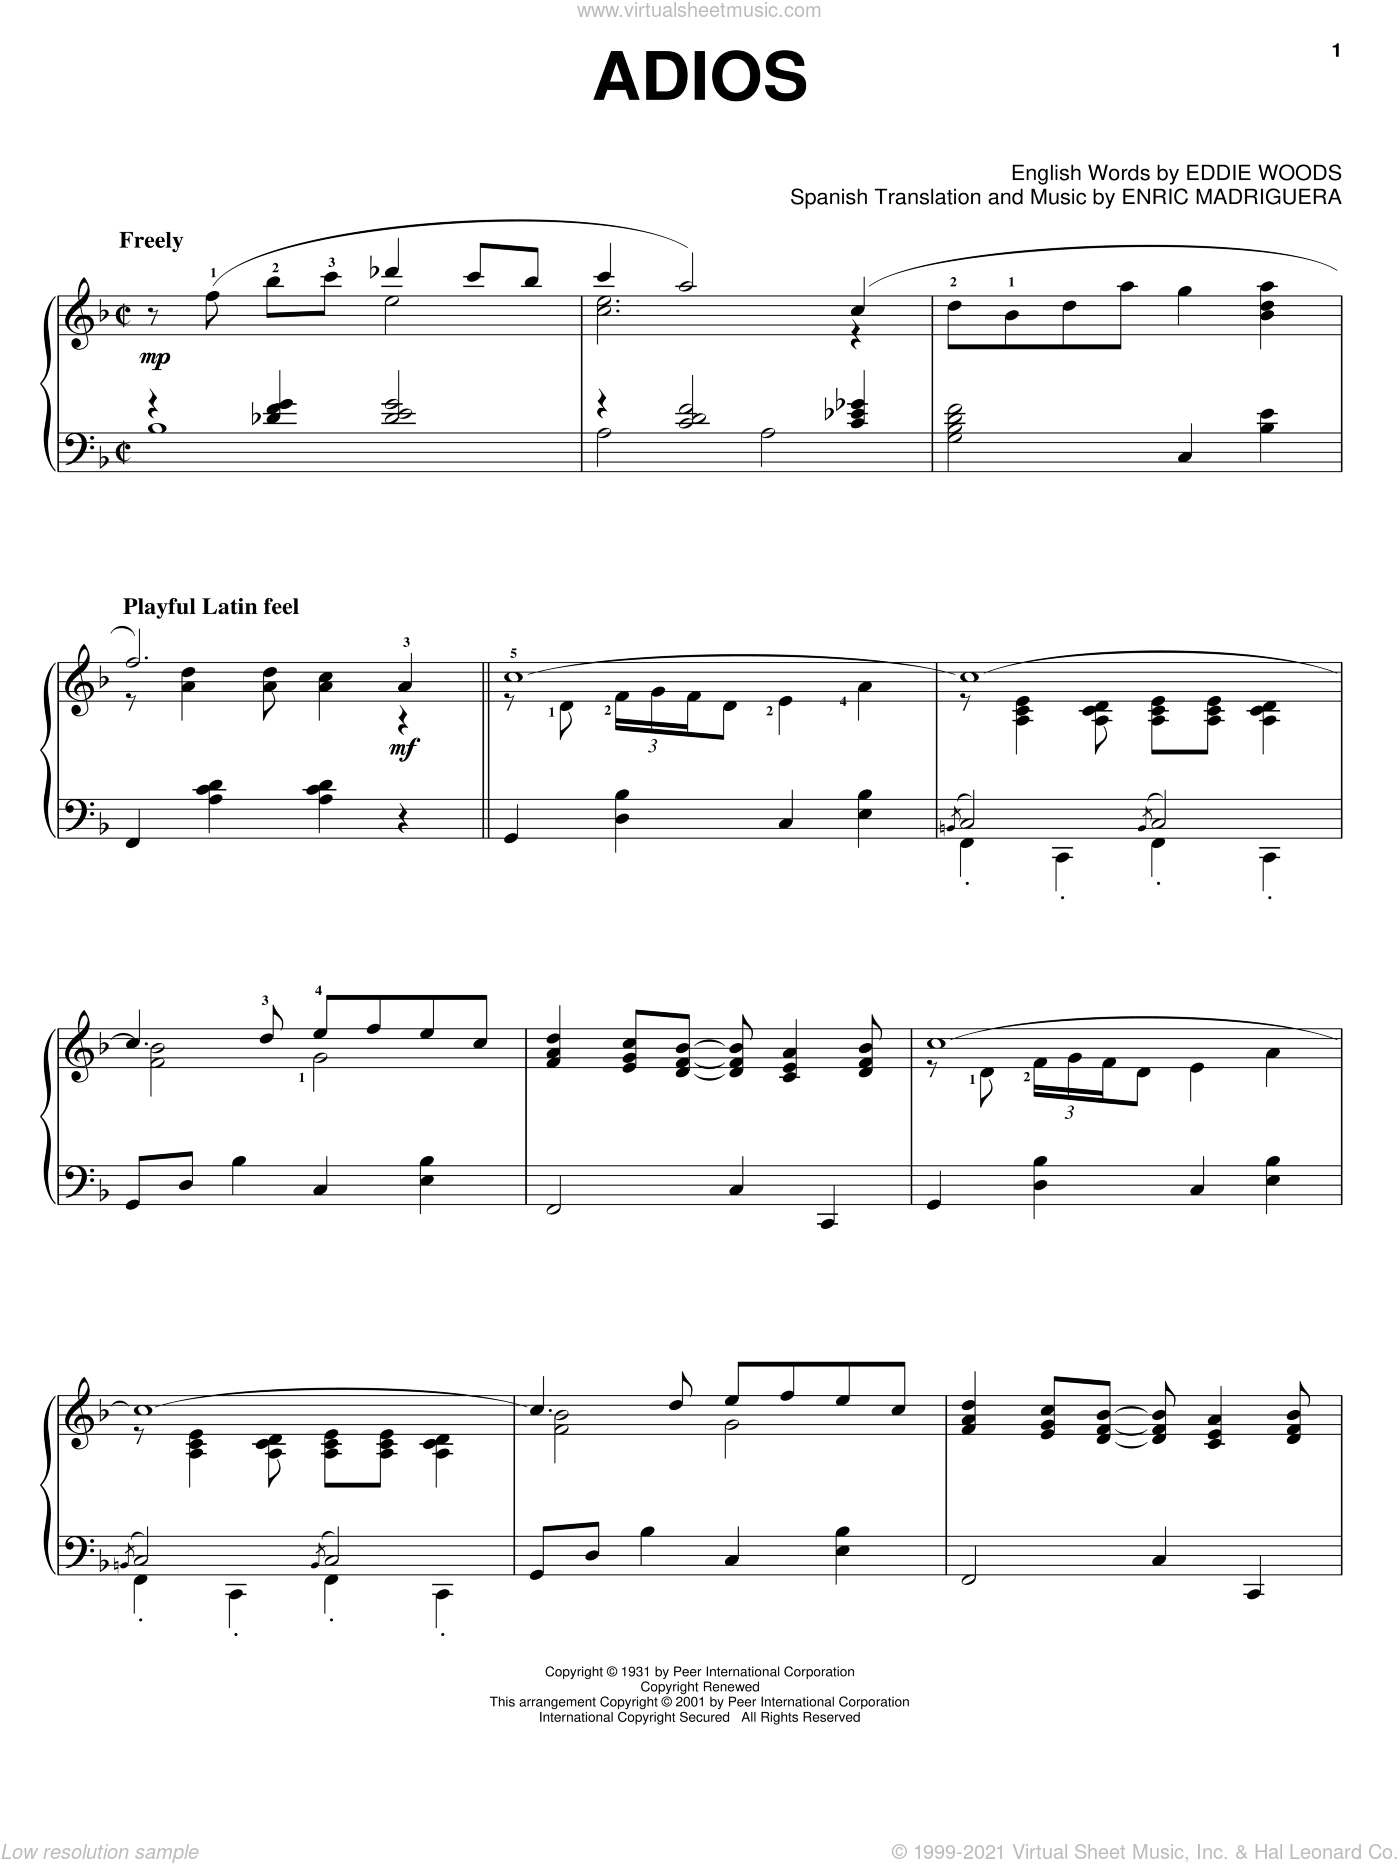 Adios sheet music for piano solo by Enric Madriguera